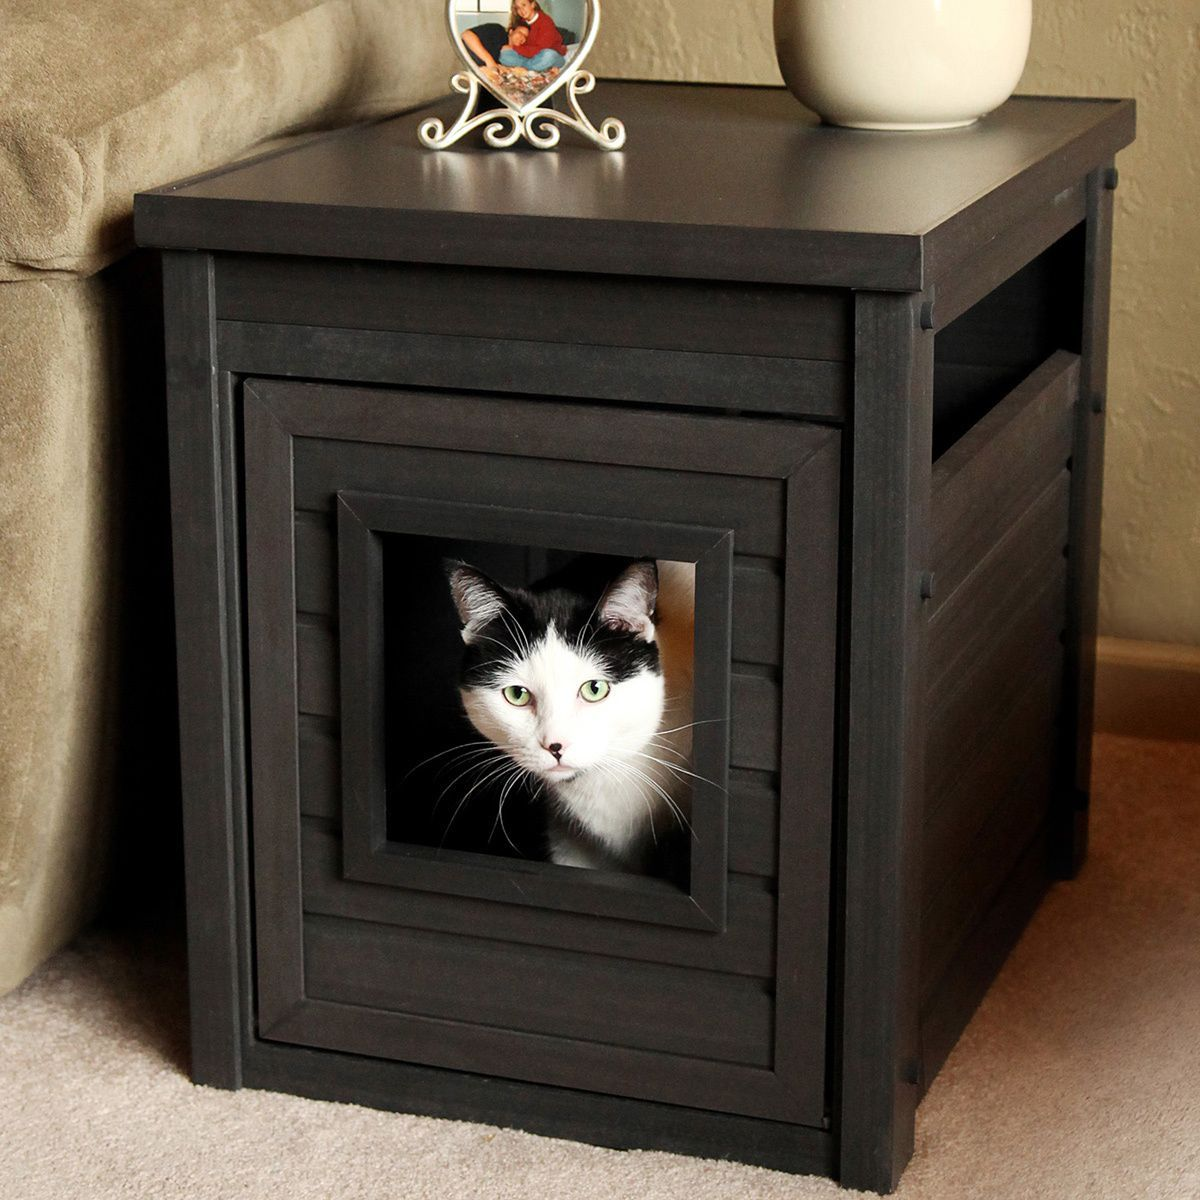 covered cat litter box furniture. This Attractive, Eco-friendly Litter Box Cover Is Made From A Non-toxic Covered Cat Furniture